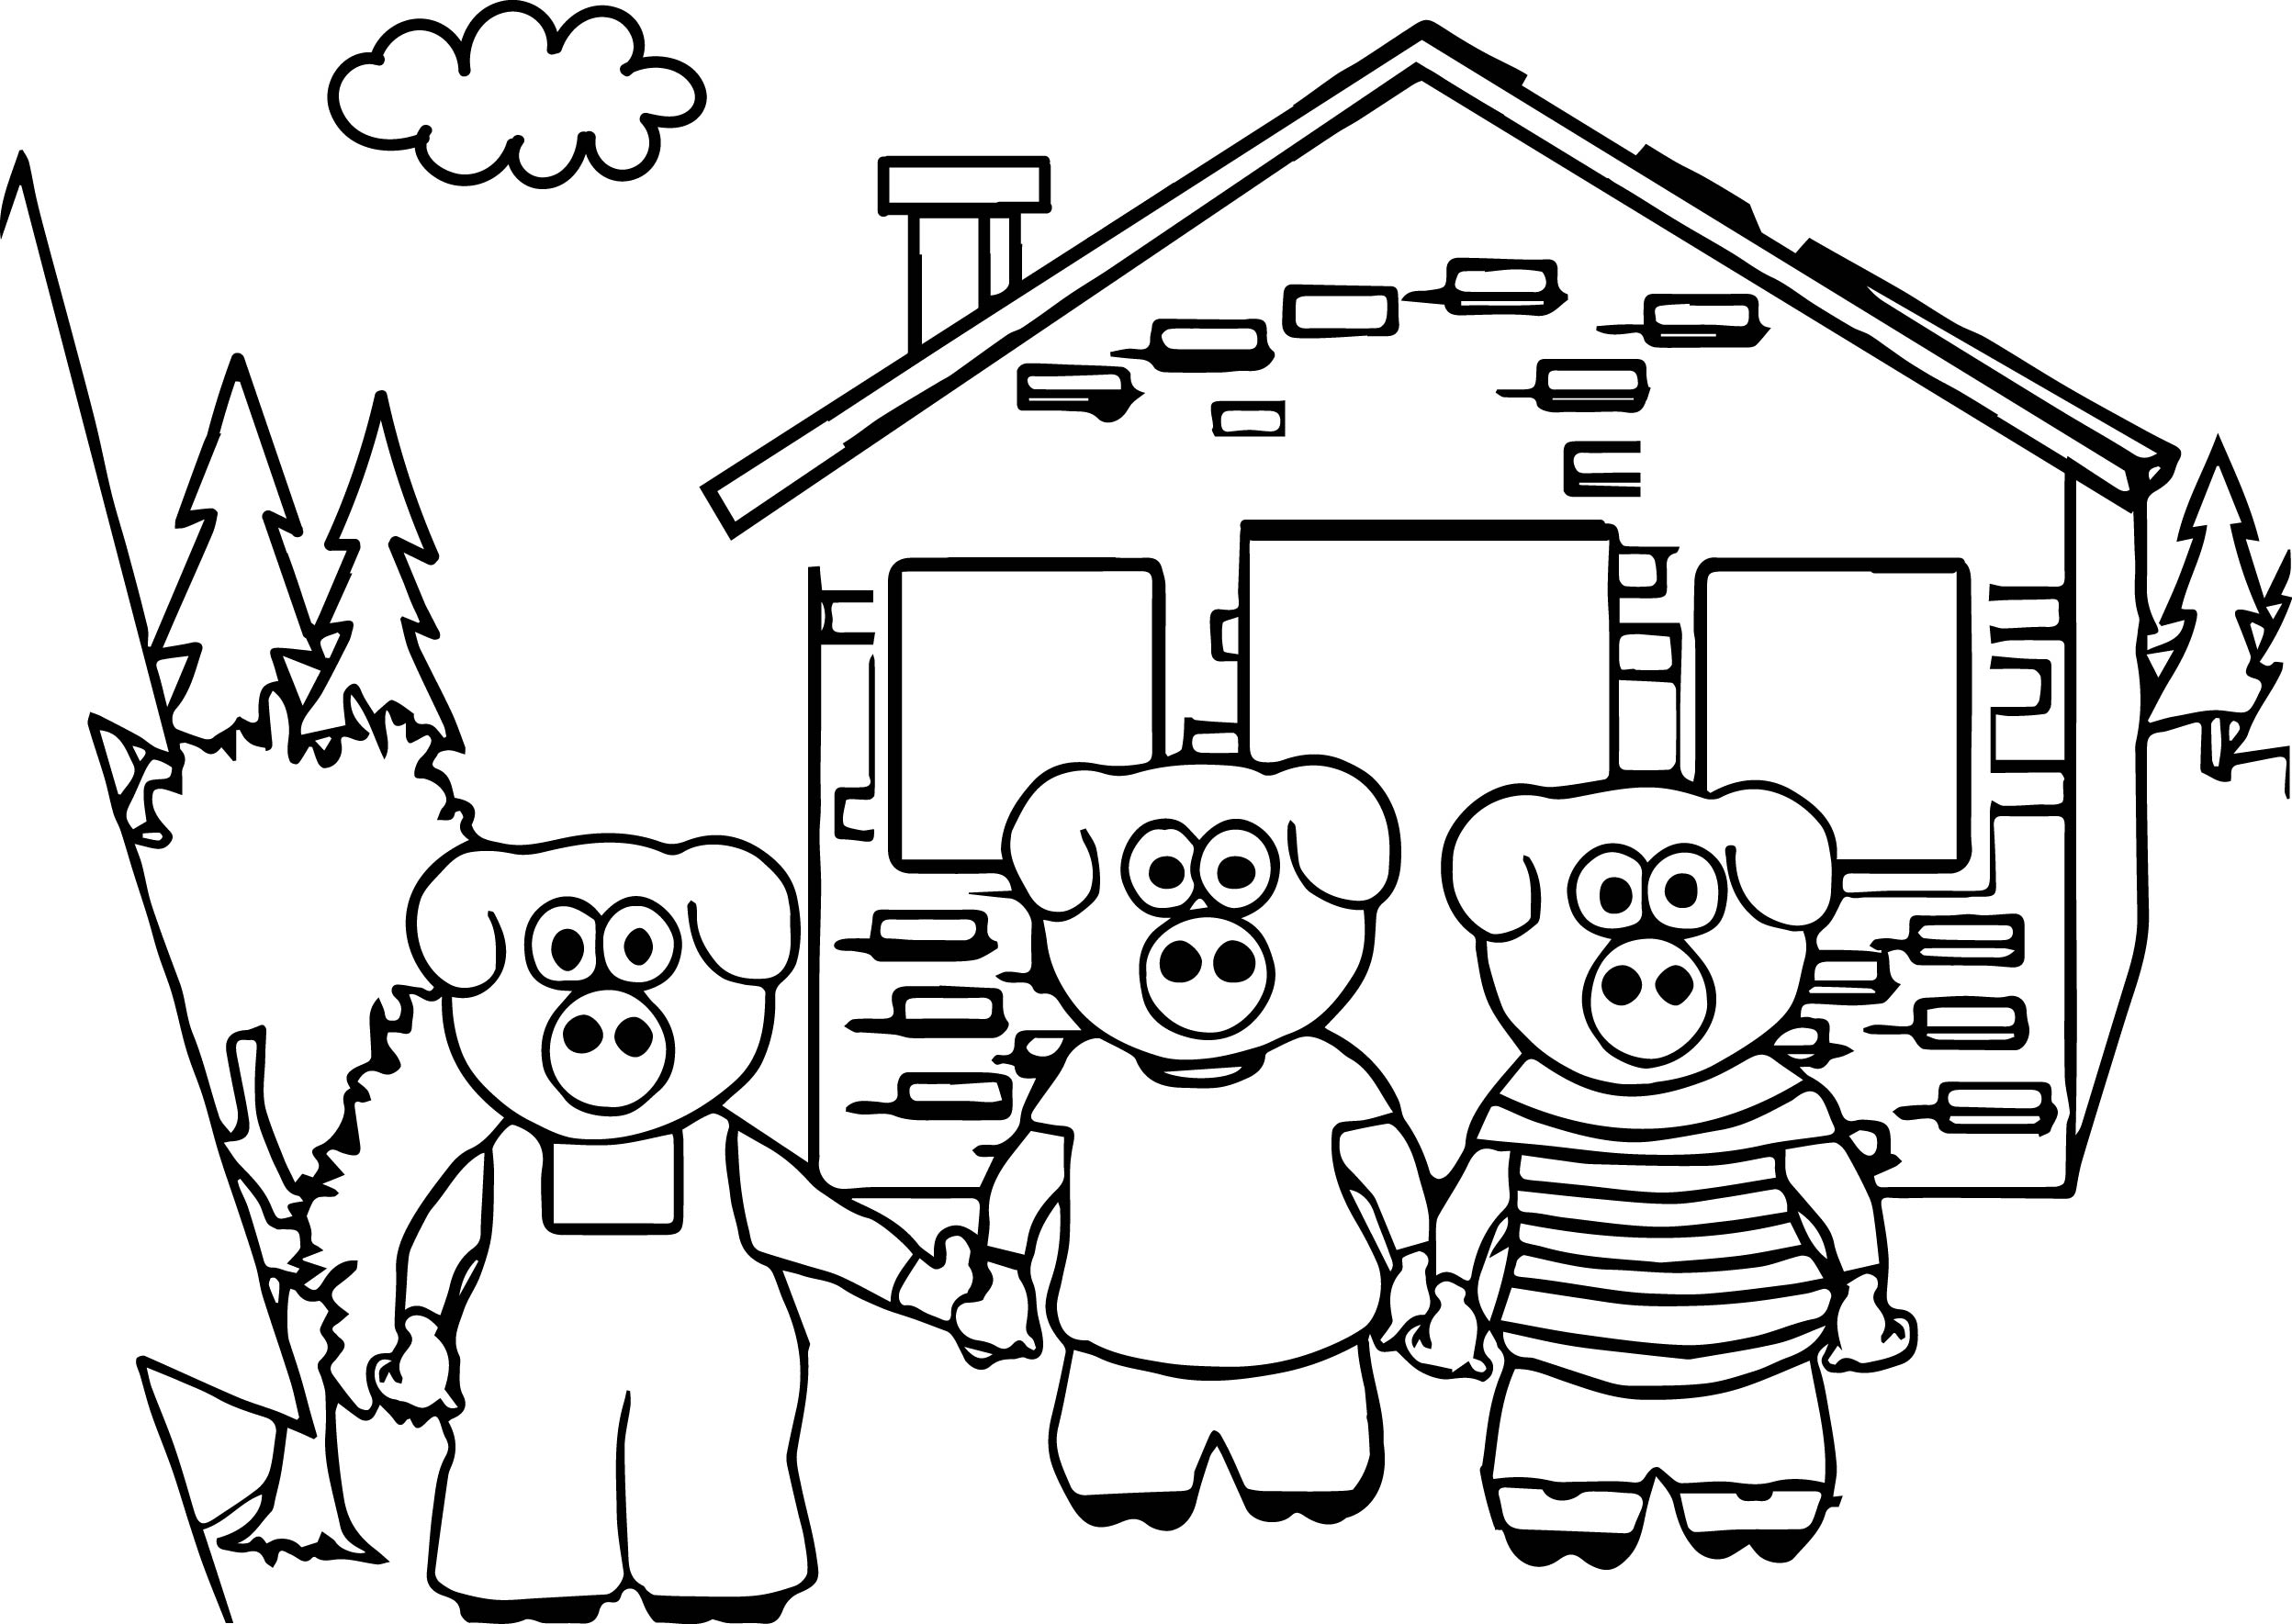 Coloring pages 3 little pigs - Keys To Literacy Three Little Pigs Coloring Page